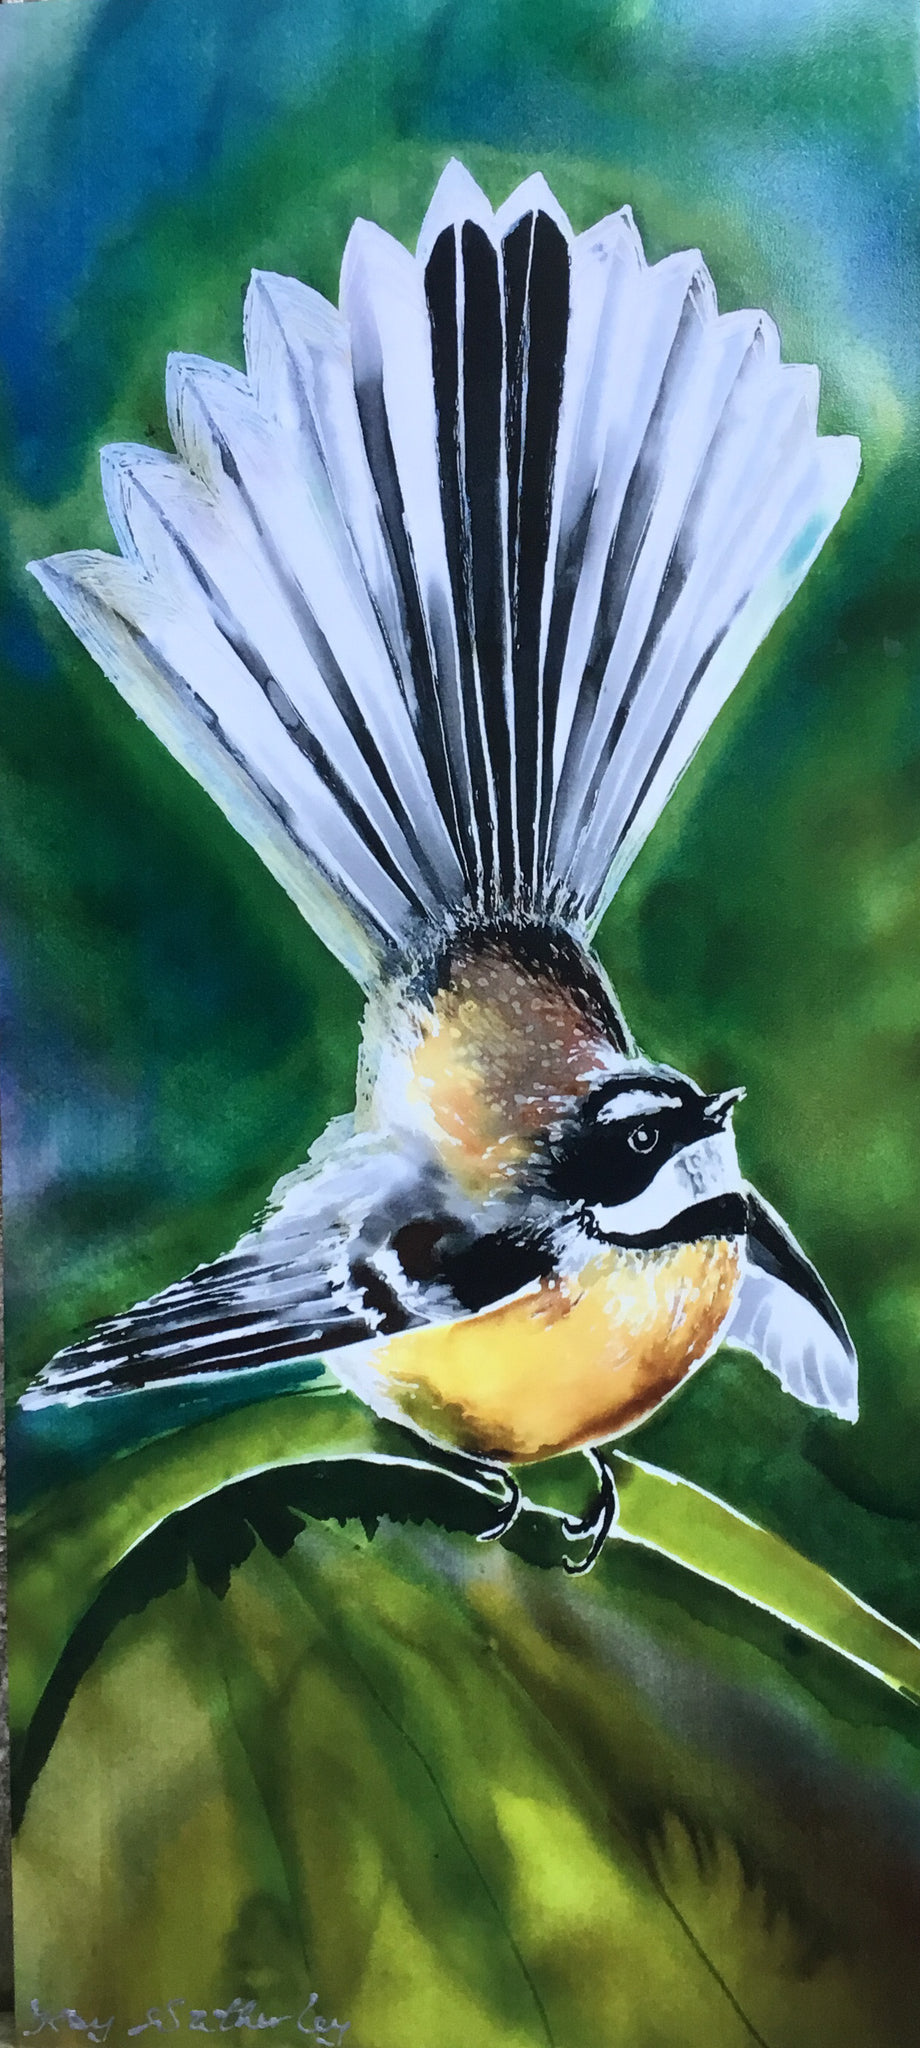 A Video of NZ Birds Outdoor and Indoor Art.